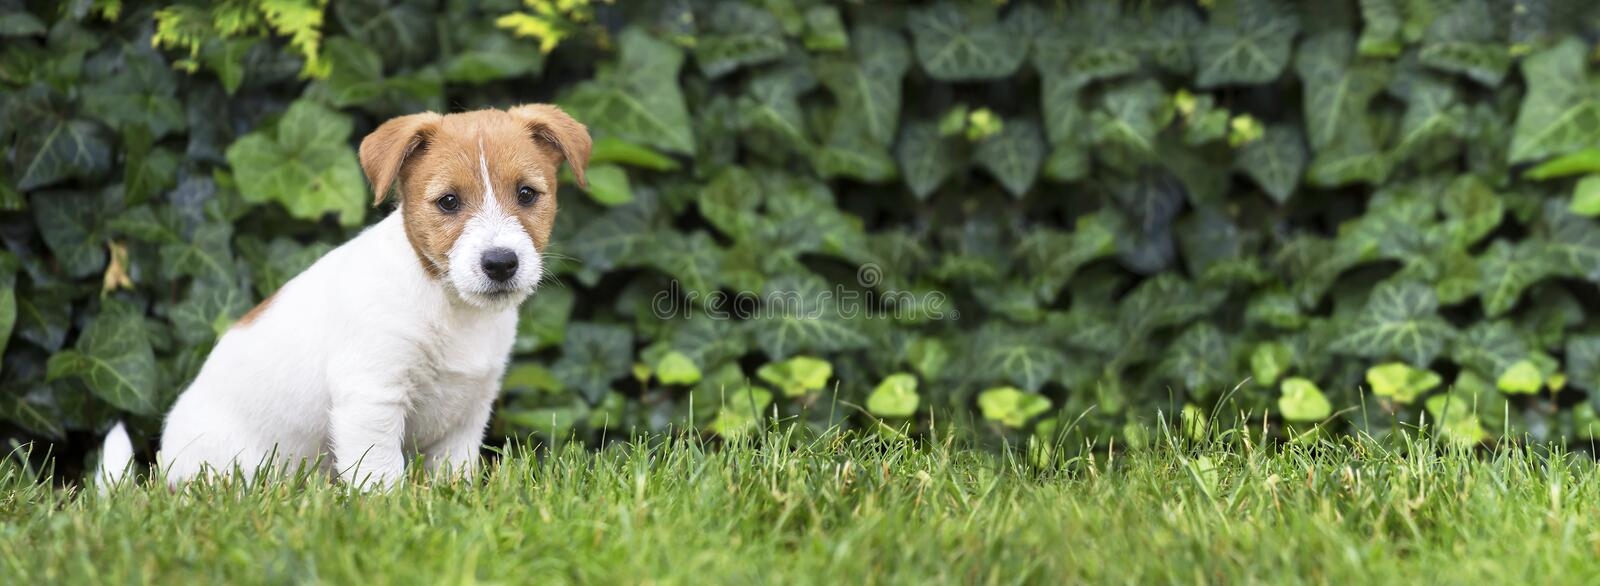 Pet training, obedience concept - jack russell dog puppy sitting. Pet training, obedience, dog shool concept - jack russell terrier happy smart puppy sitting in royalty free stock photo